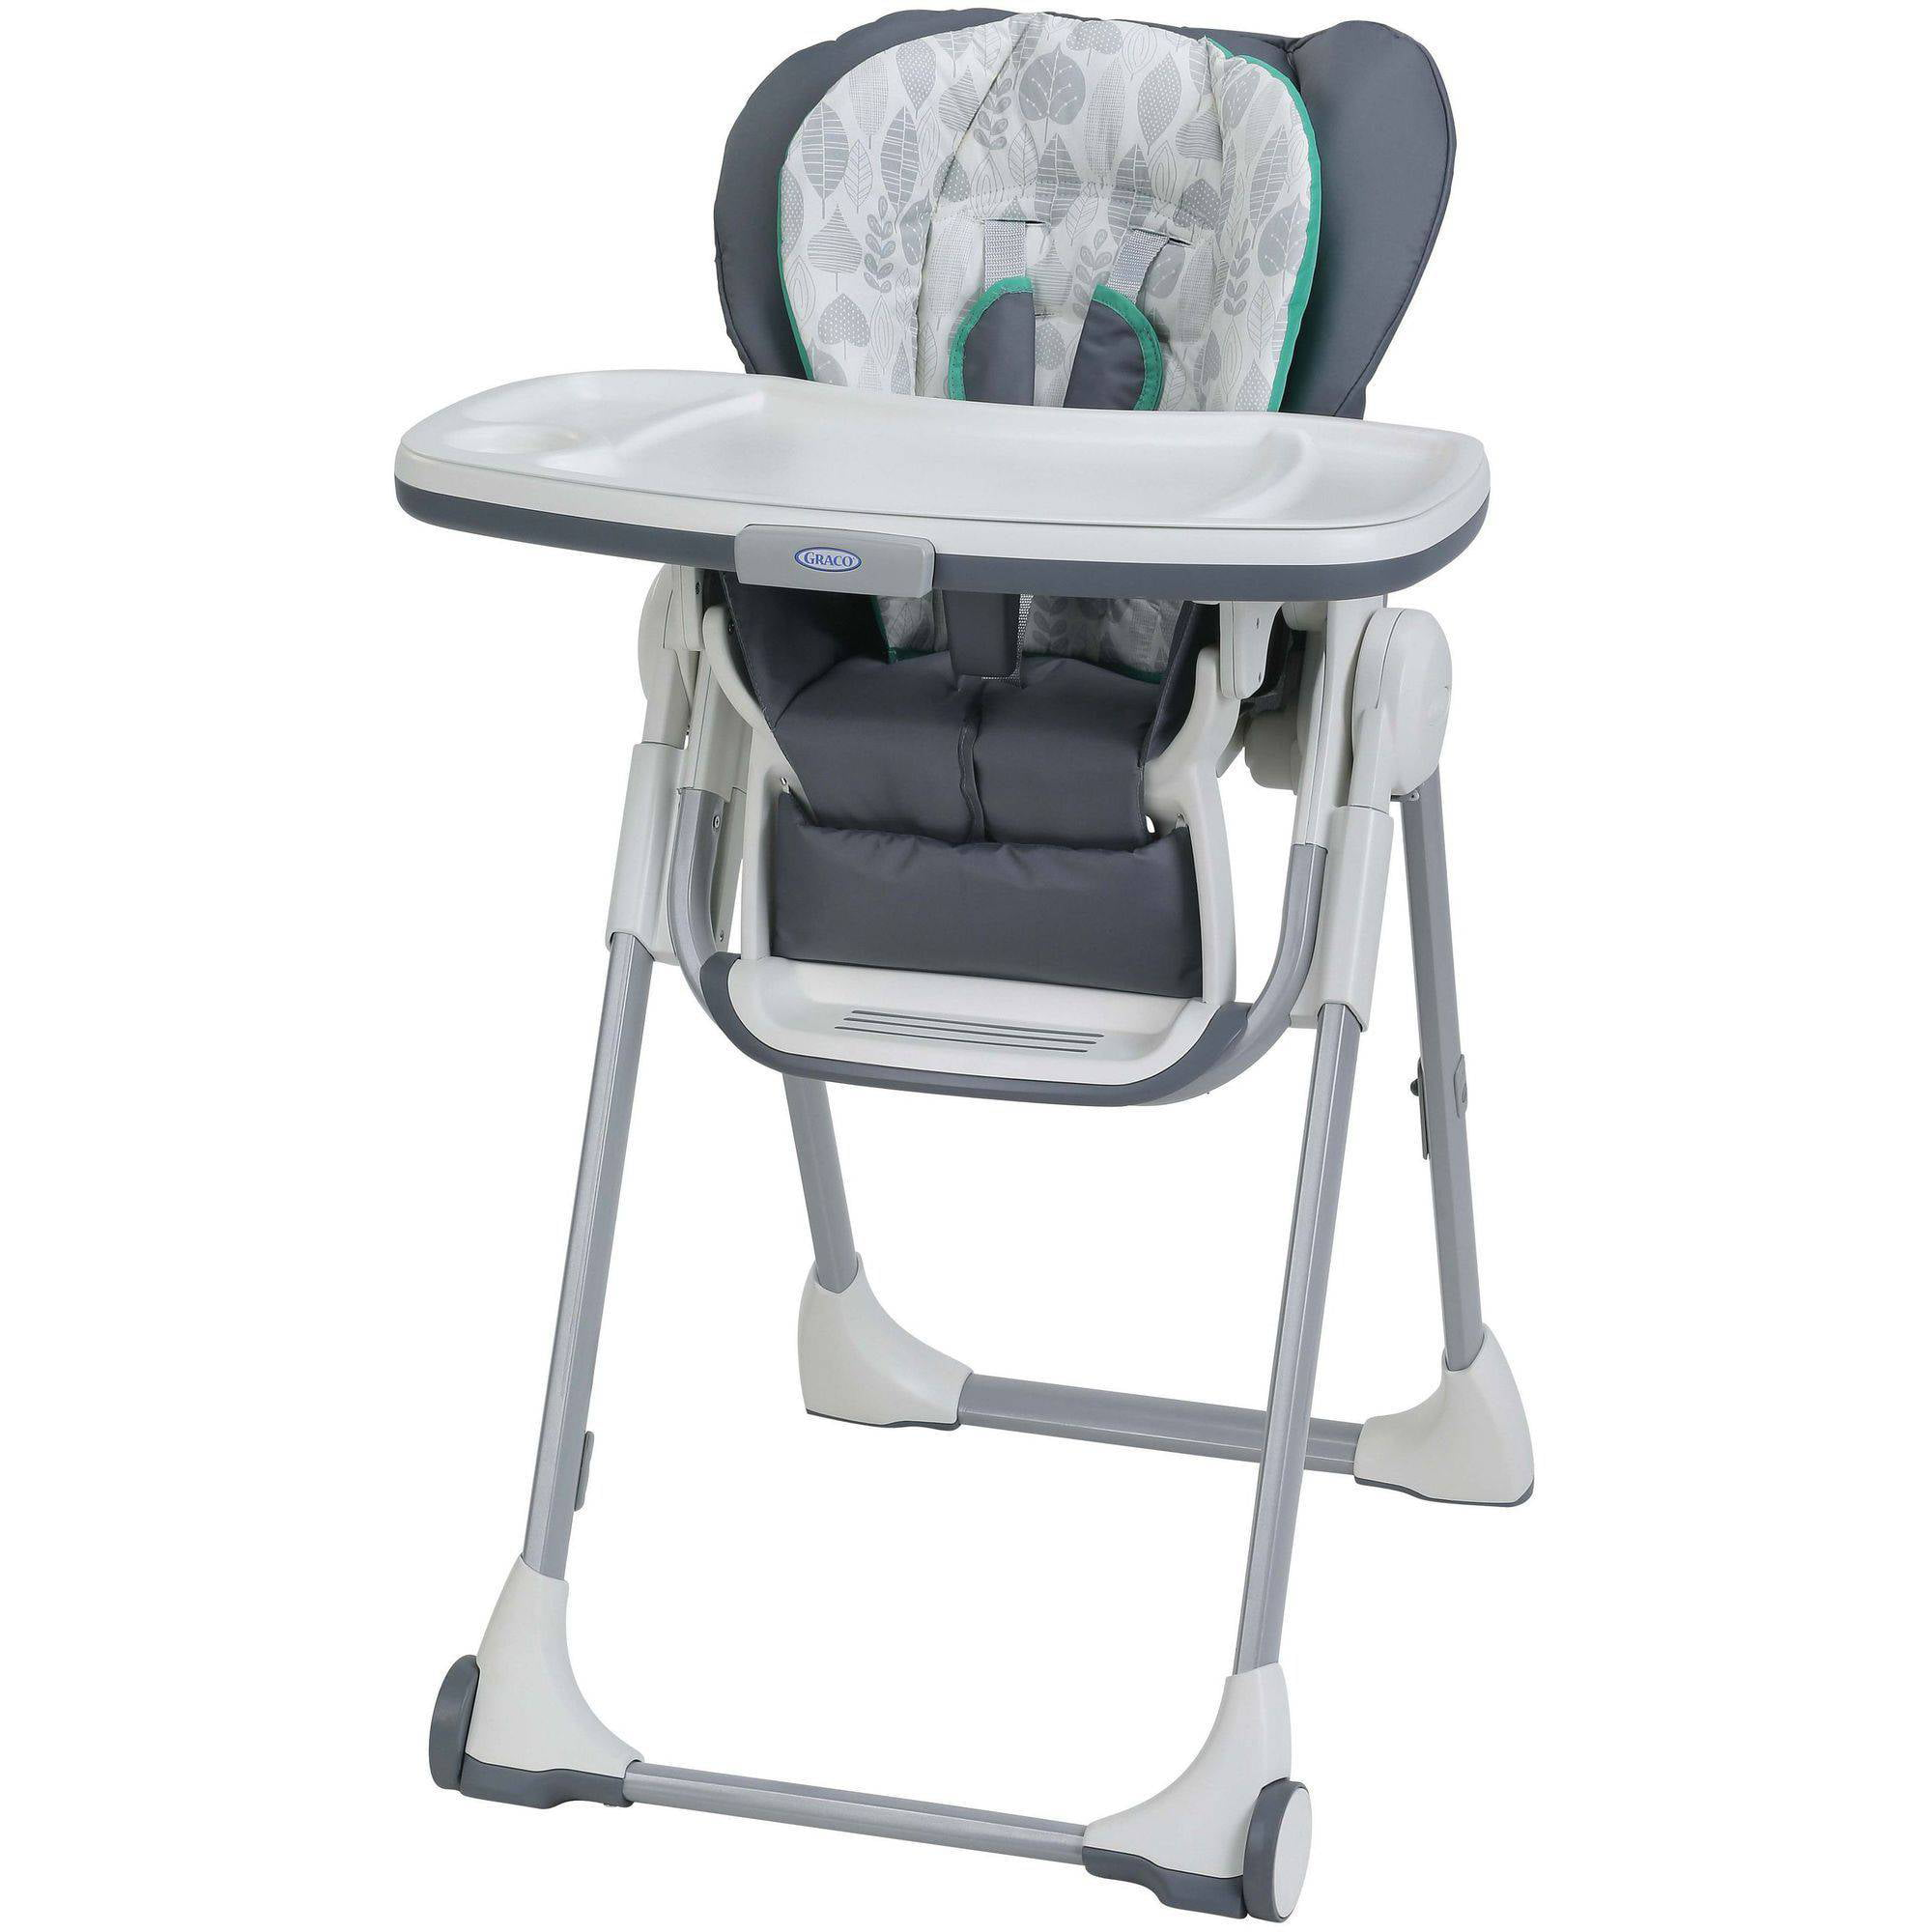 graco lx cheap chairs mealtime wooden studio canada for in high chair sale